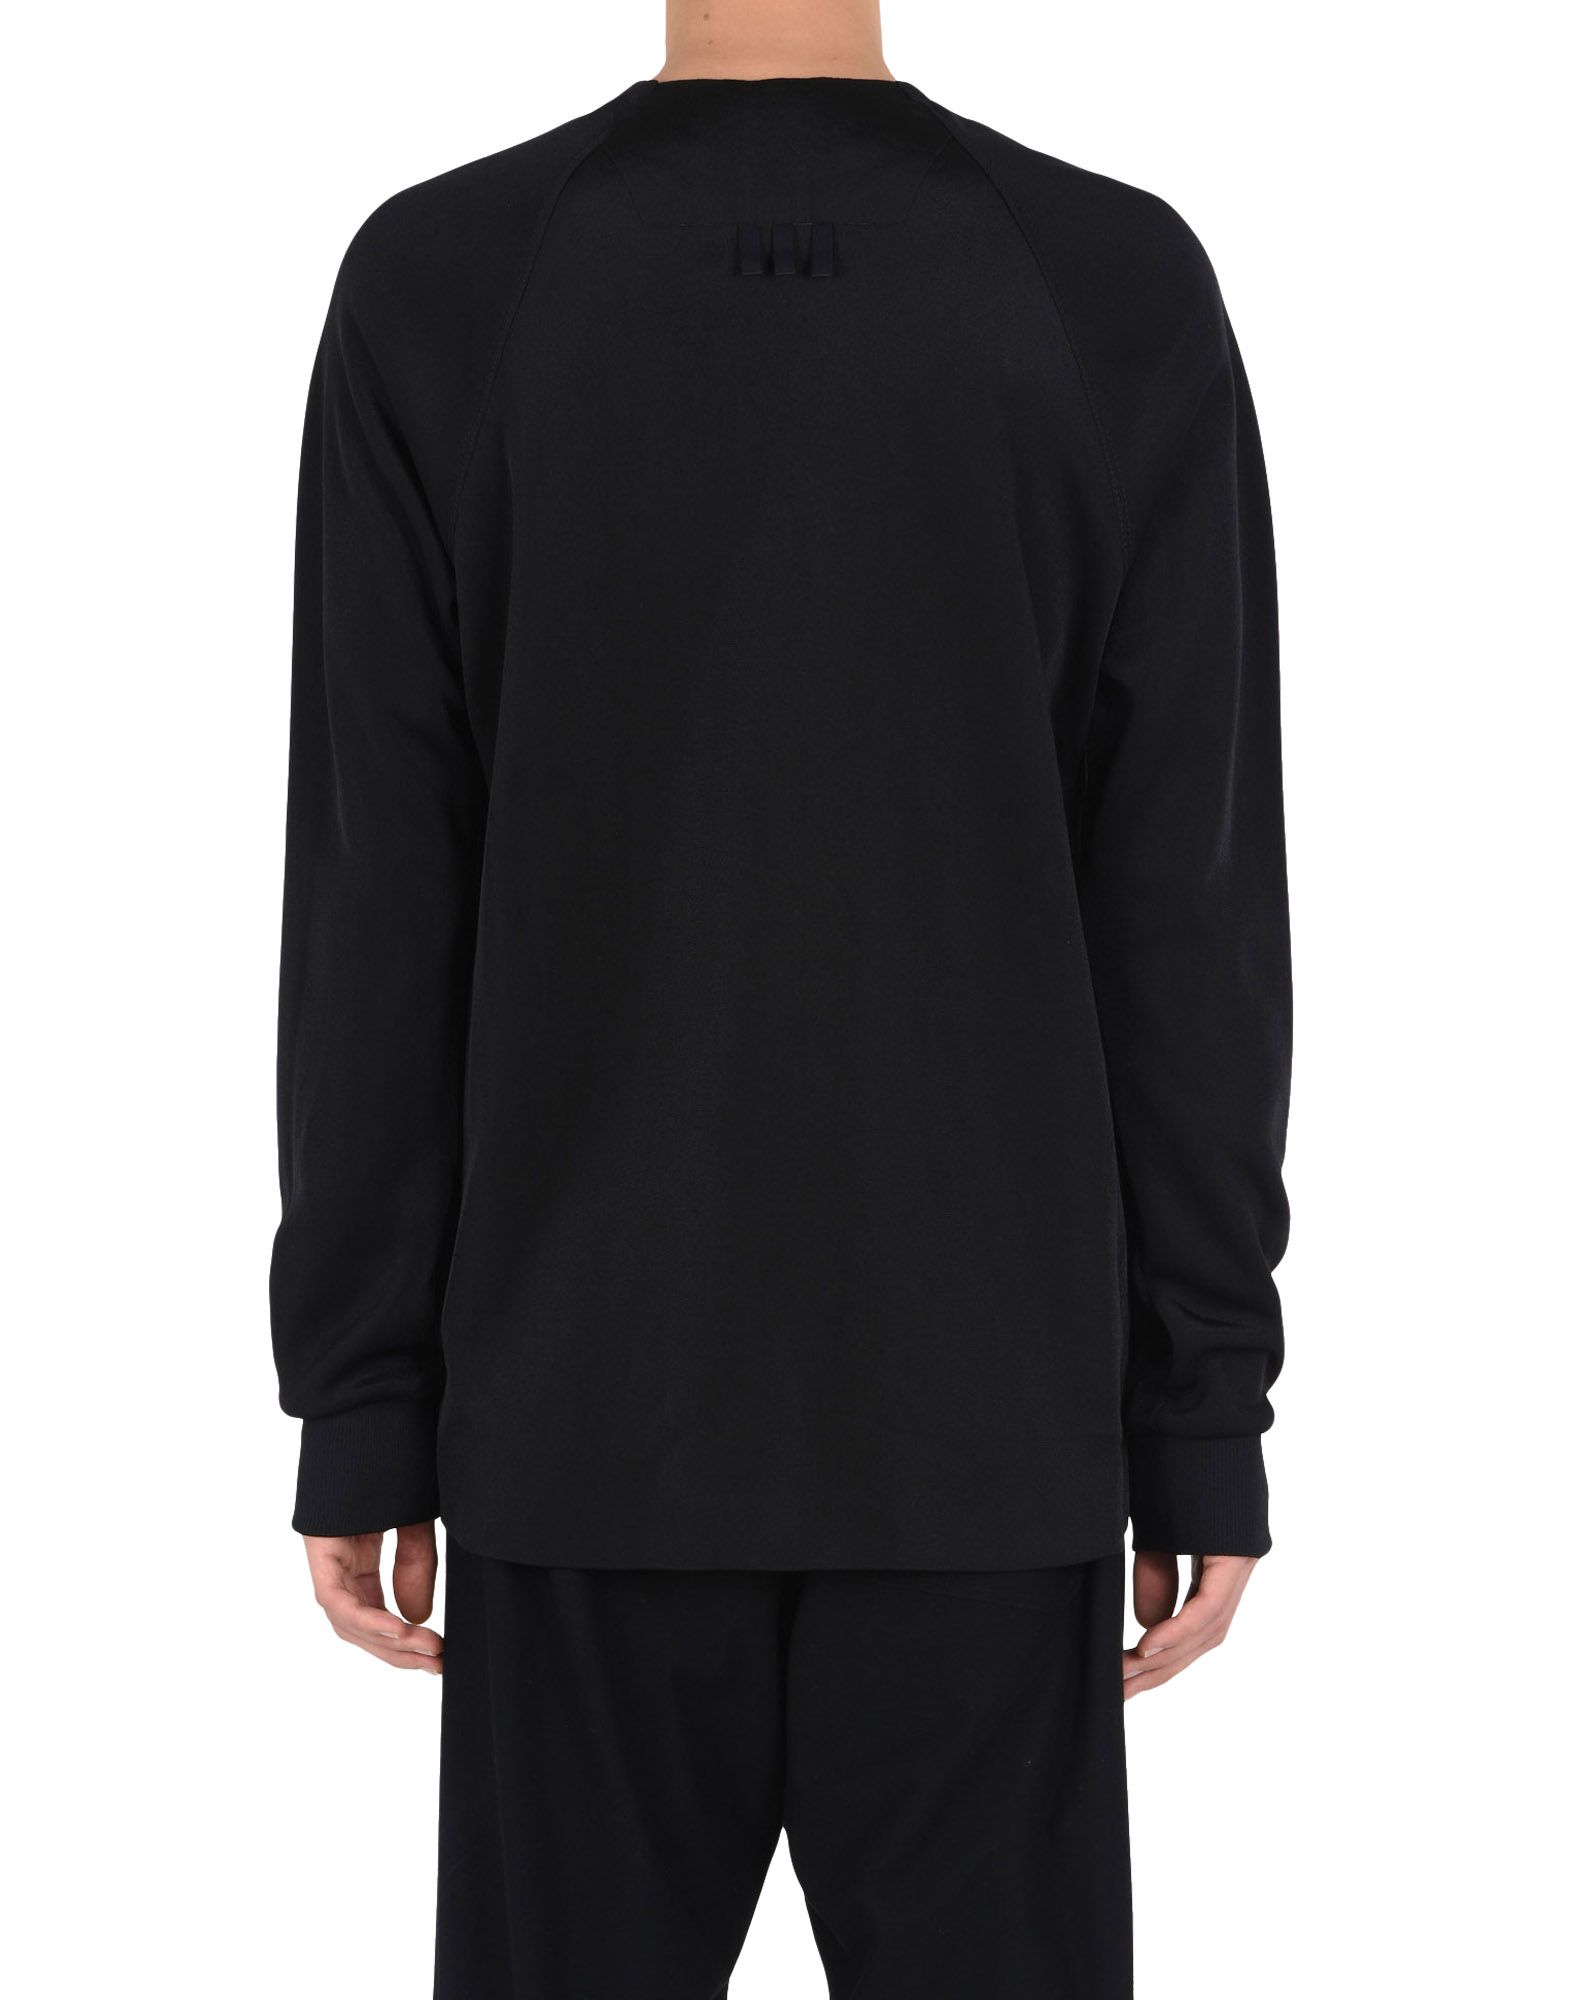 Y-3 Y-3 SPACER MESH SWEATER Sweatshirt Man e